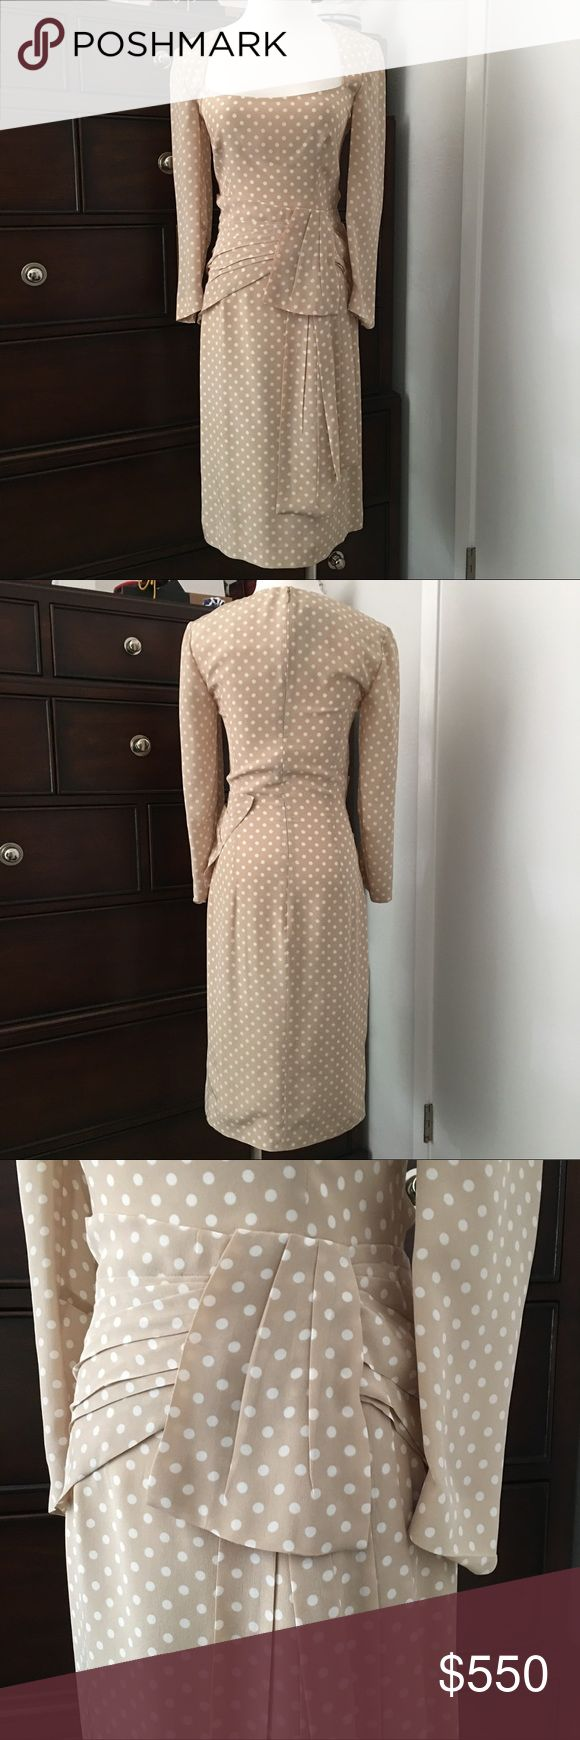 NWT Prada Beige Polkadot Silk Dress Sz 38 US 2 NWT Authentic Prada Polkadot silk dress. Sz 38 US Sz 2. So very Kate Middleton in its ladylike cut and detail.  Gorgeous bow detail at the waist. There is a loose stitch on the left sleeve. Instyle Magazine just featured polkadots as a hot trend for this season in the latest issue! Retail $2250. Prada Dresses